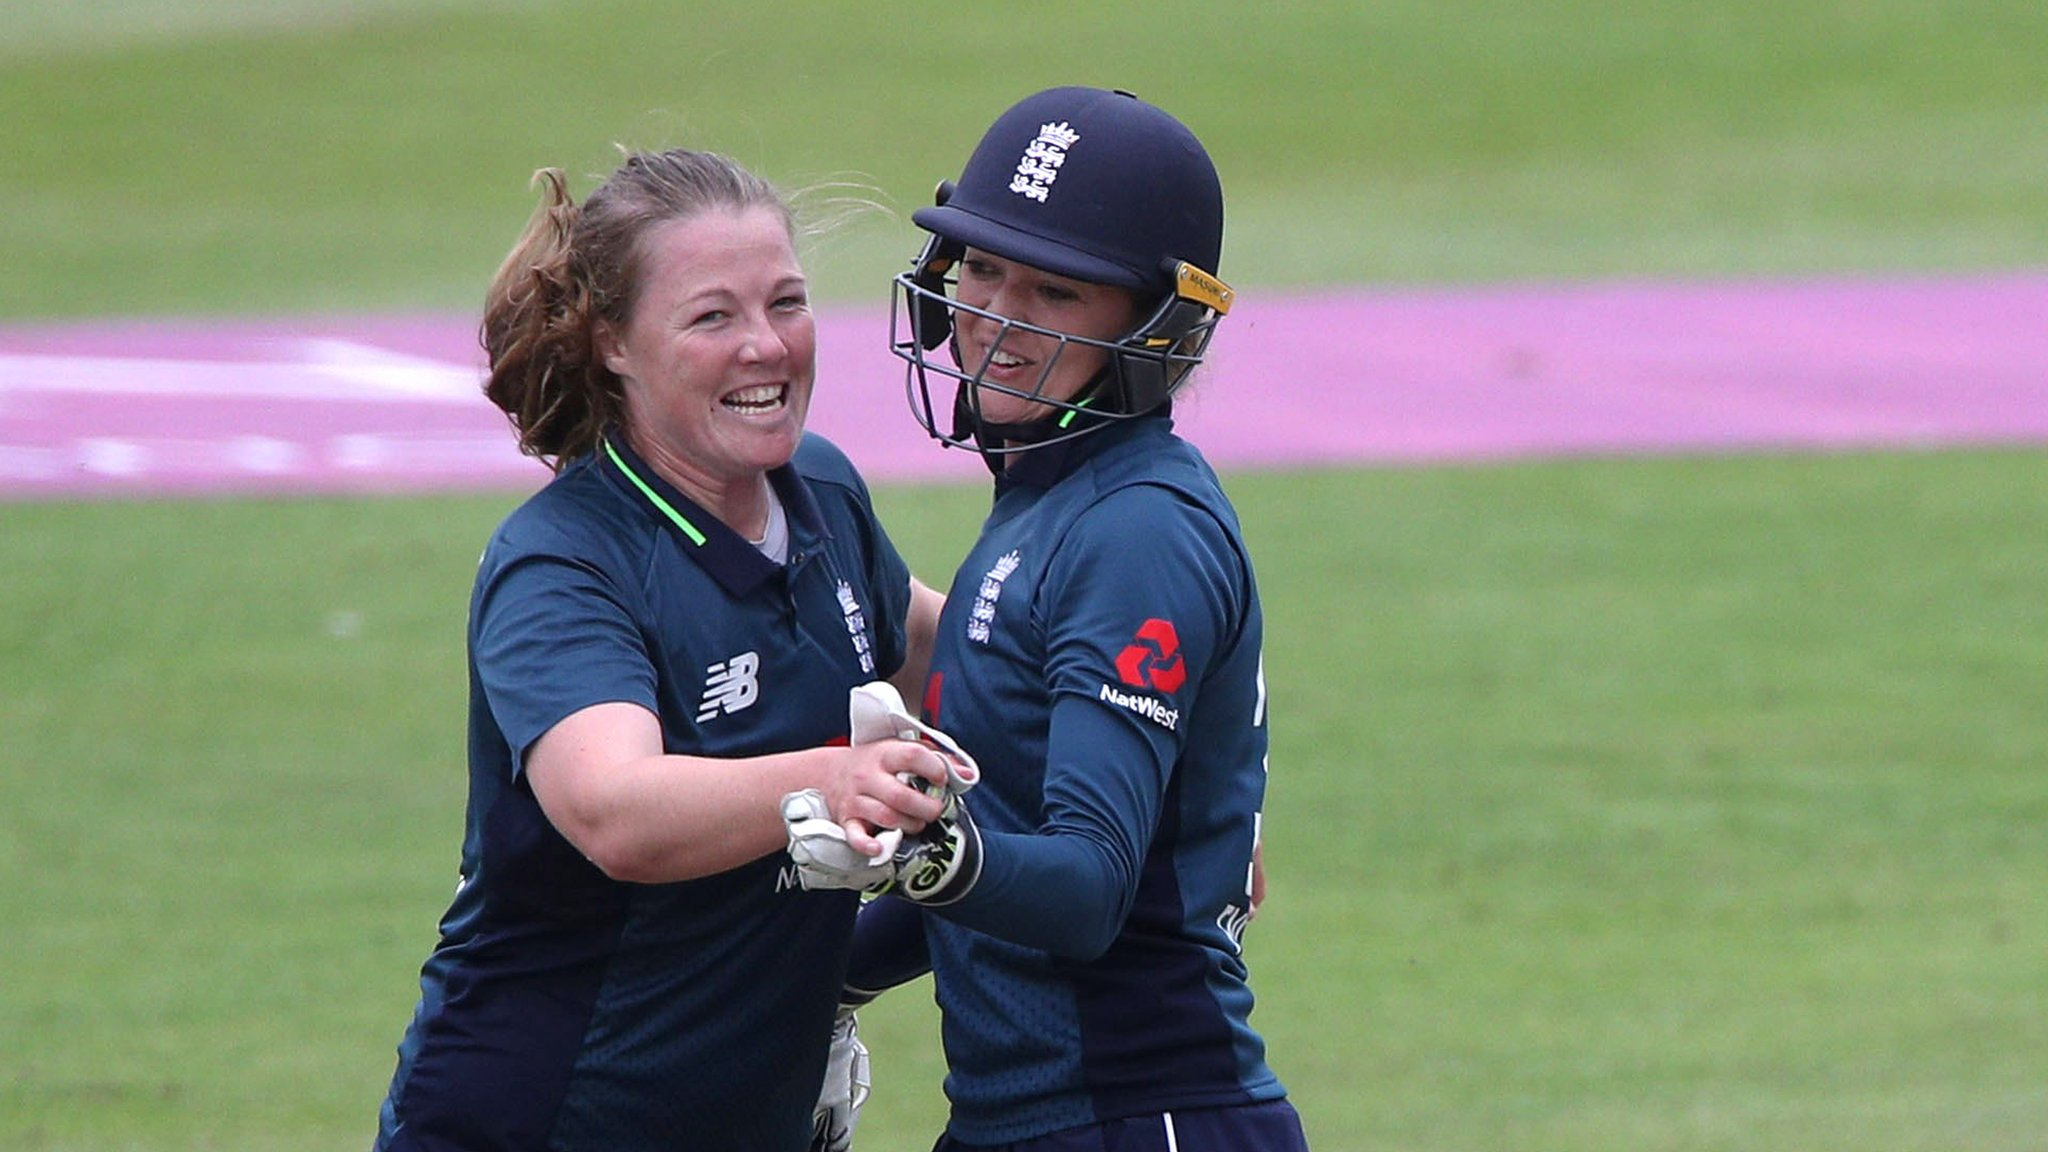 England v South Africa: Anya Shrubsole traps Lizelle Lee lbw